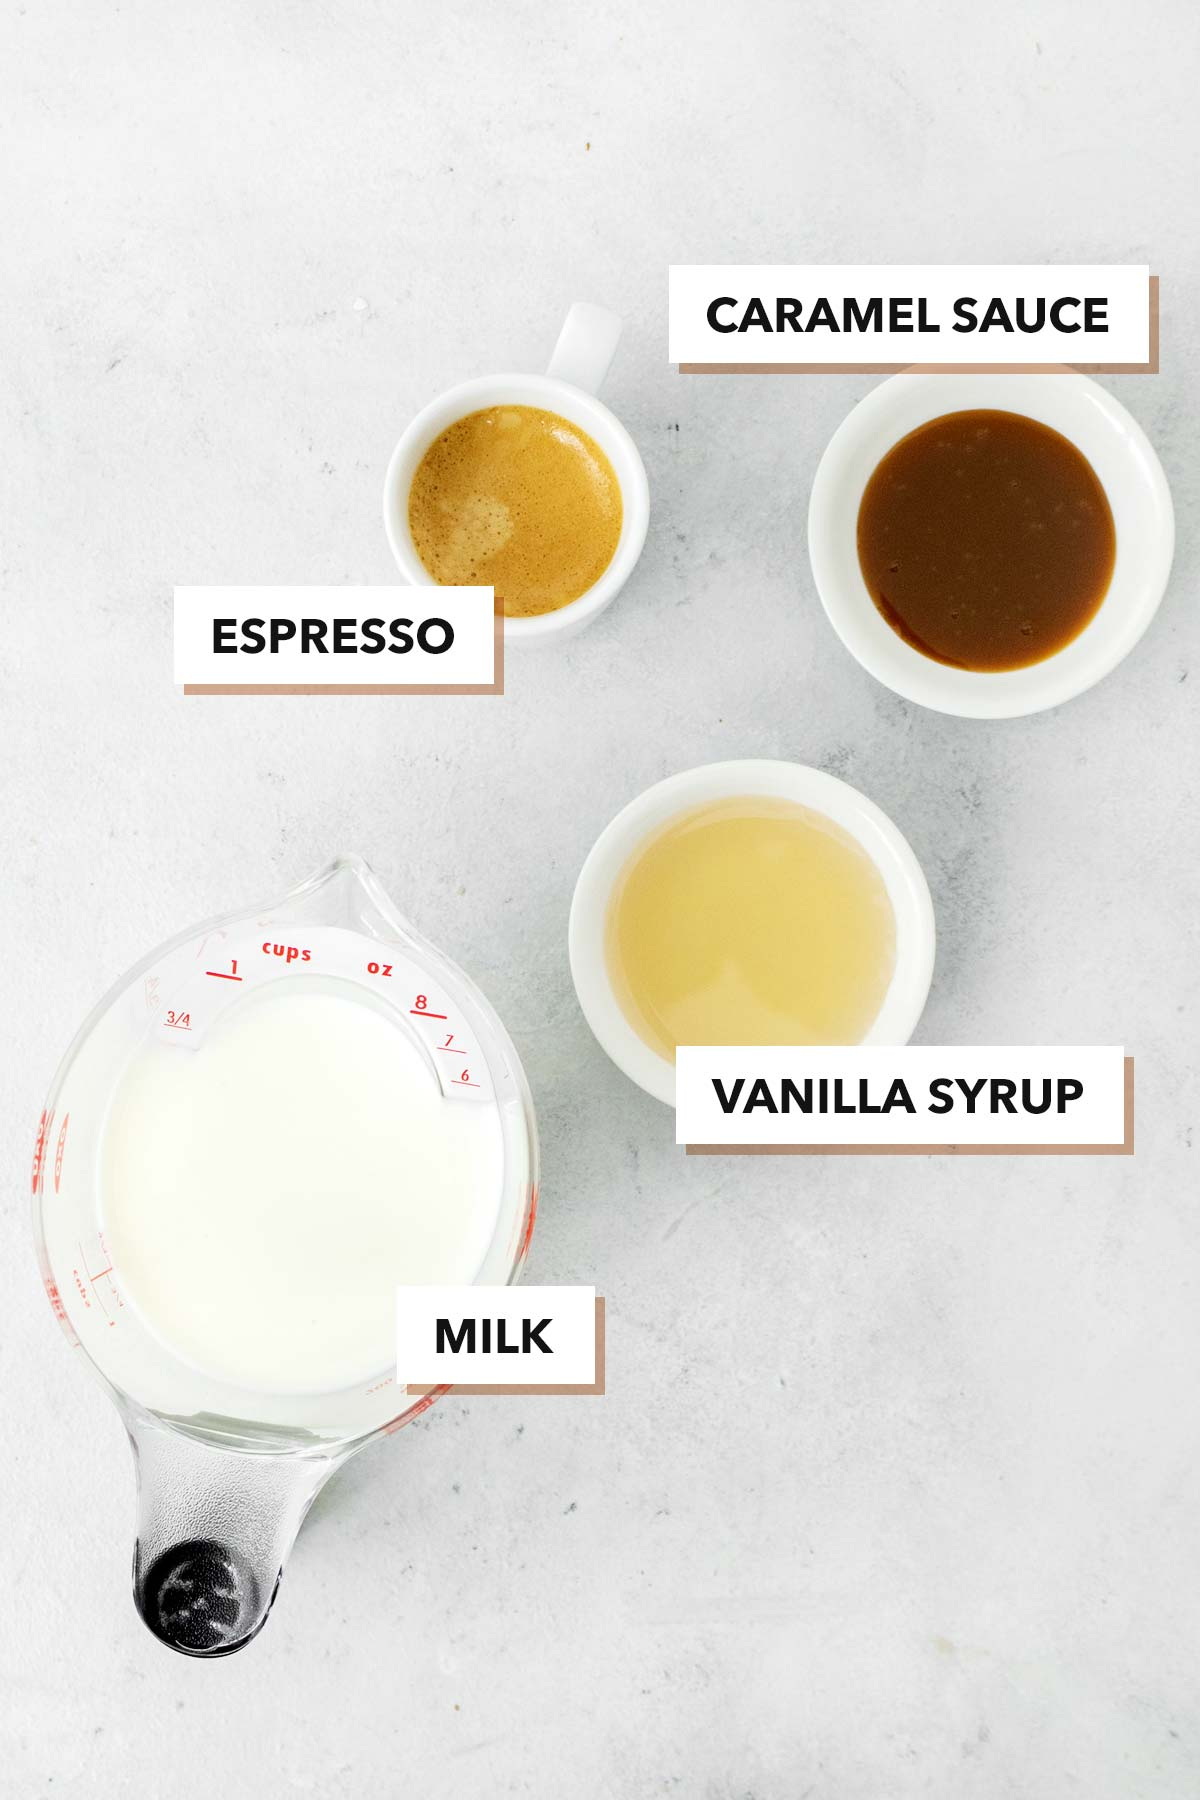 Starbucks Caramel Macchiato copycat ingredients.